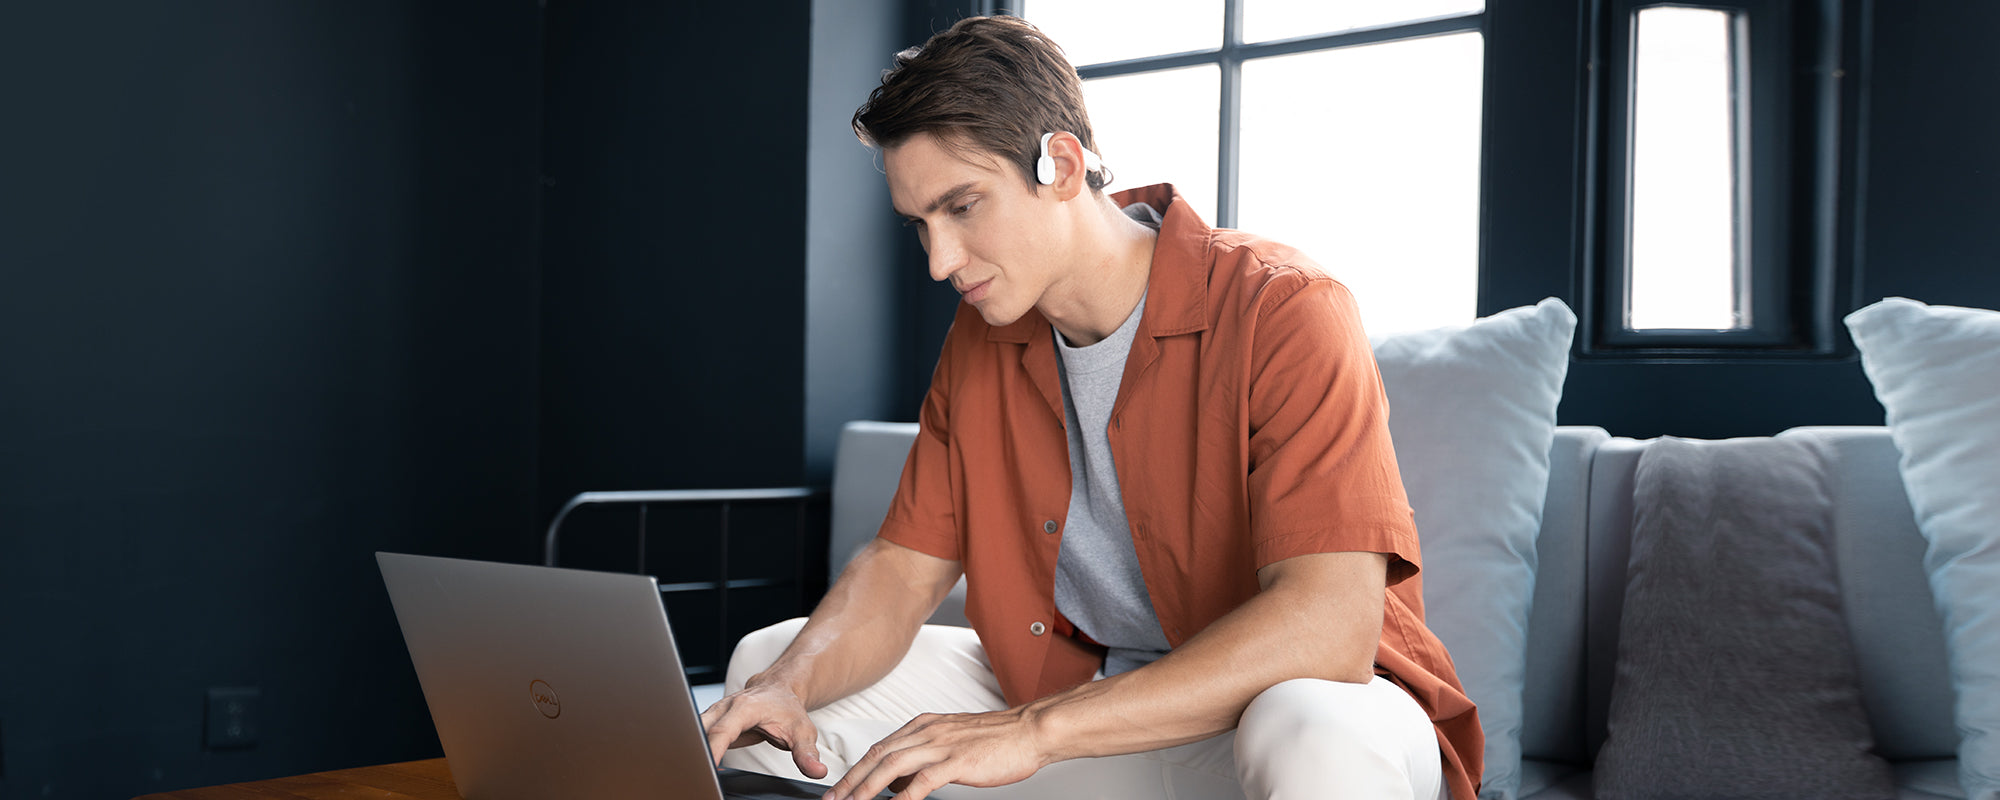 Man on laptop while wearing AfterShokz OpenMove headphones